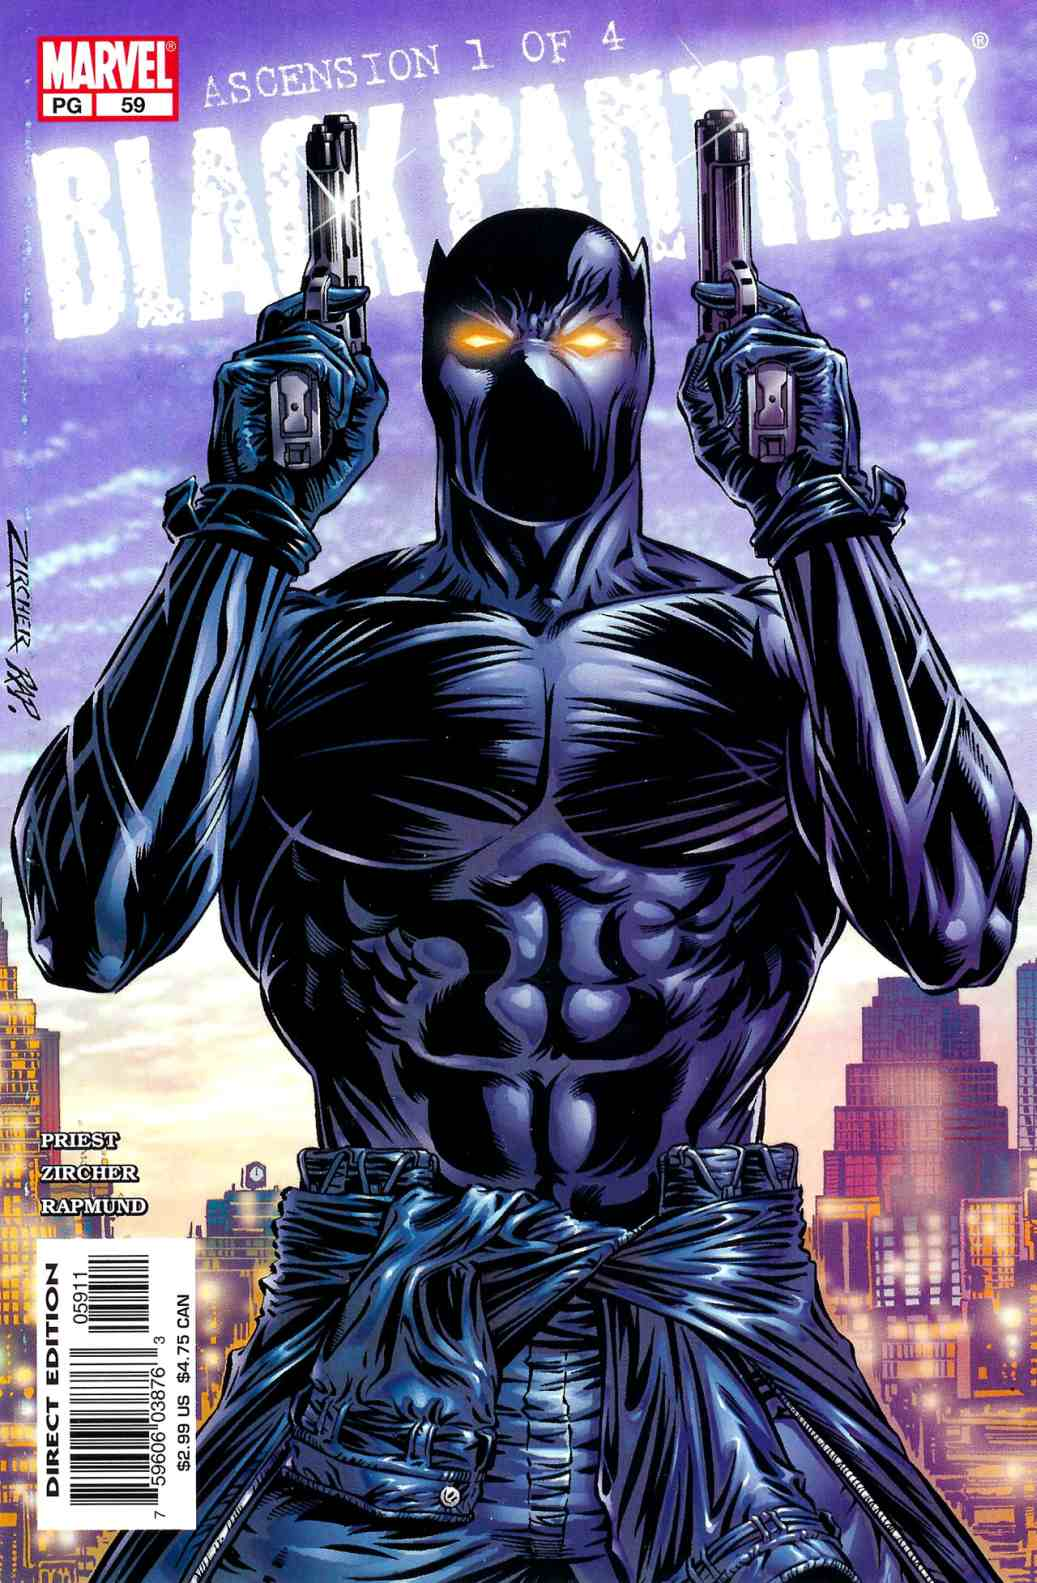 Read-Marvel-Black-Panther-Comics-Online-001